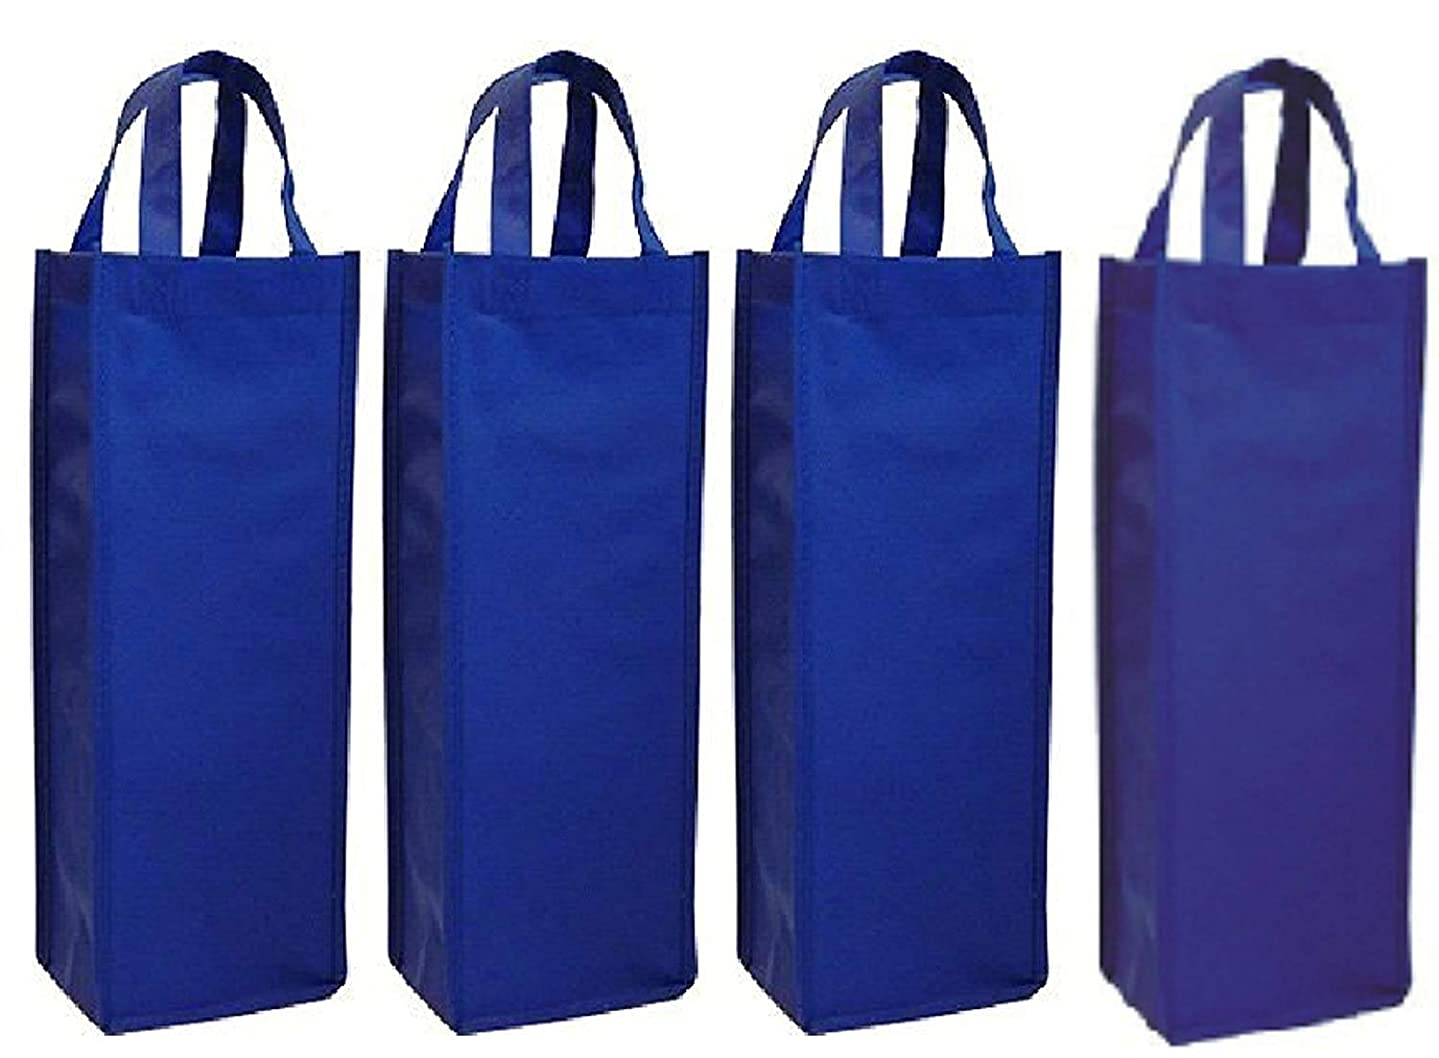 wish you have a nice day 4 Pack Non-Woven Single Bottle Wine Tote Bag Holder, Reusable Gift Bag (4, blue) abc987160180